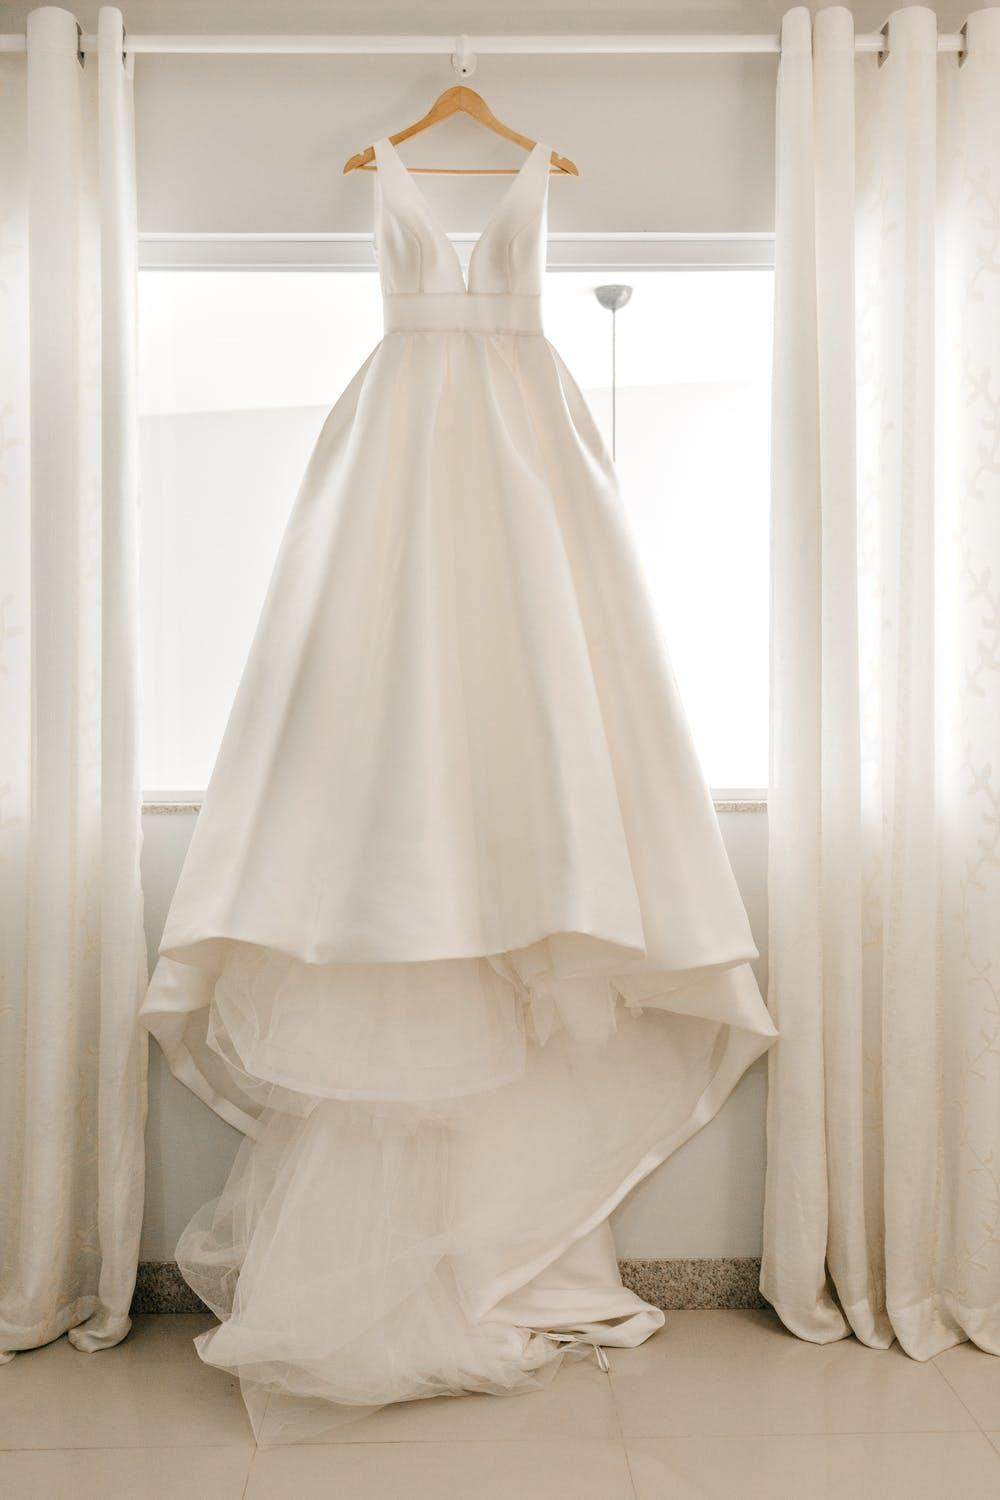 wedding dress finally ready to collect